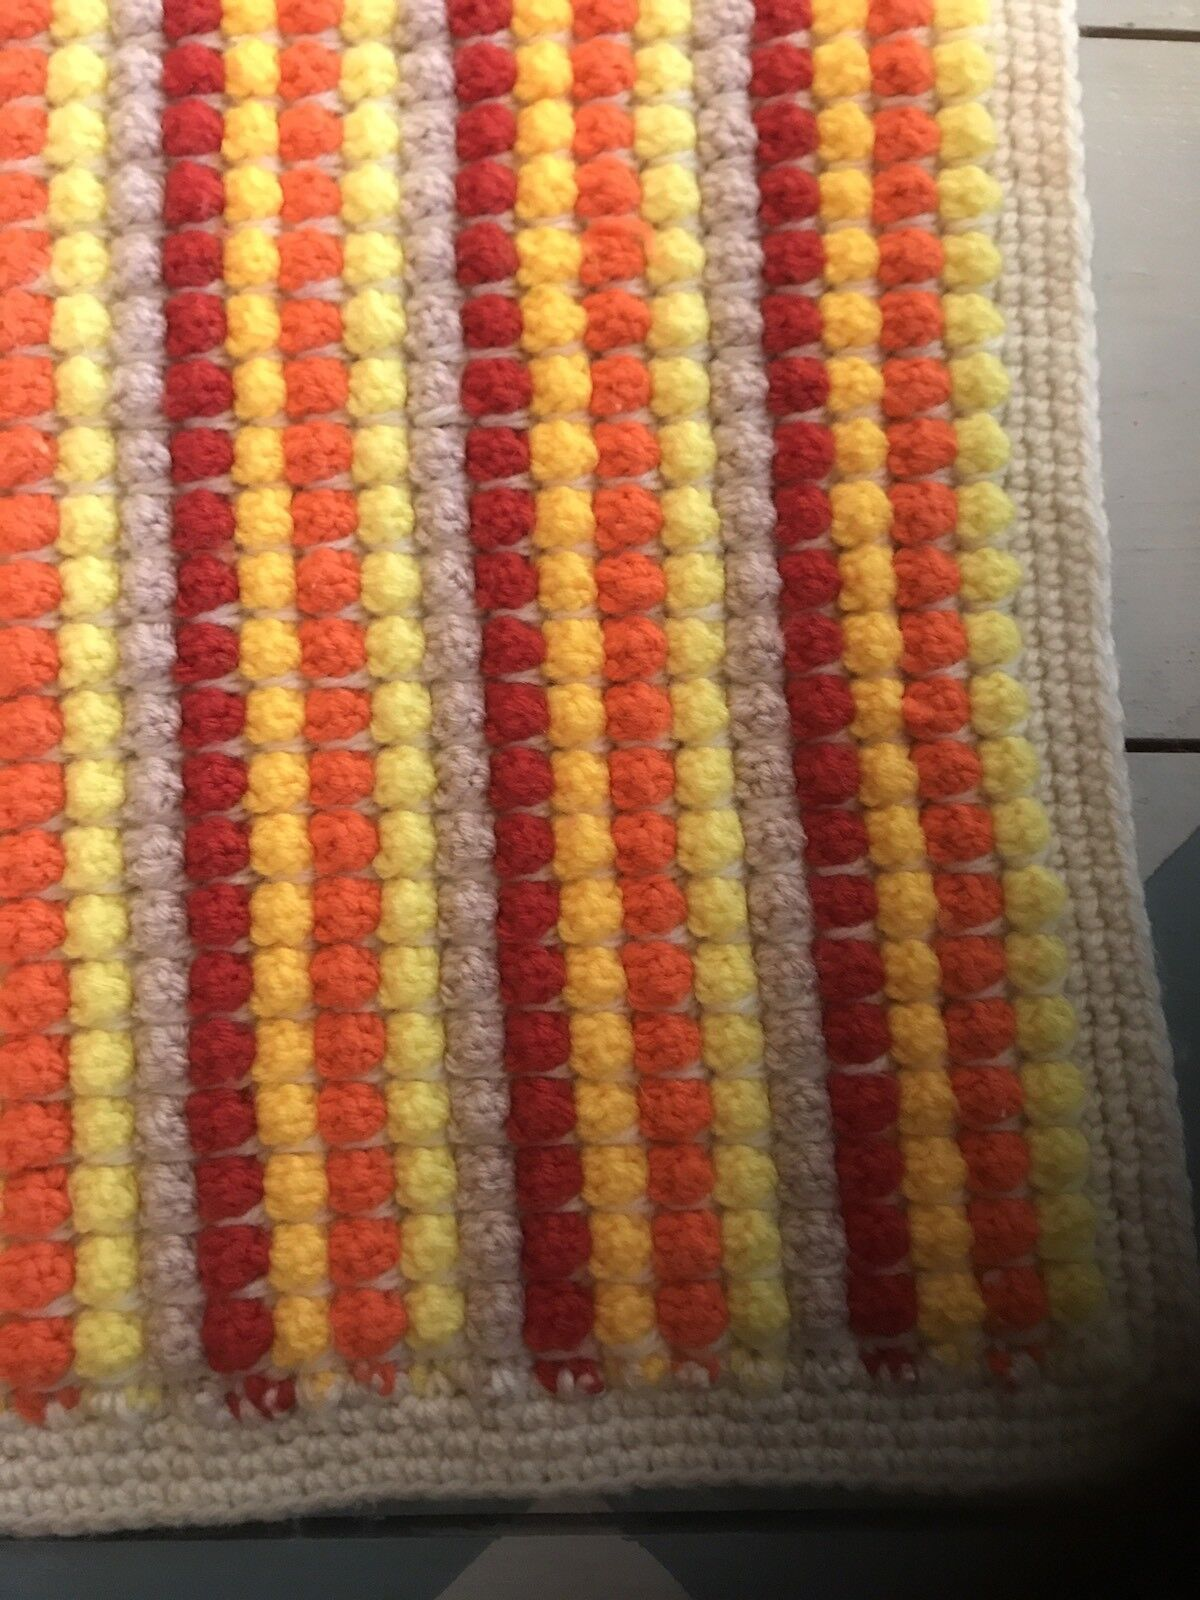 Handmade Vintage Multicolor Popcorn Stitch  Afghan Throw Blanket 51 x 63